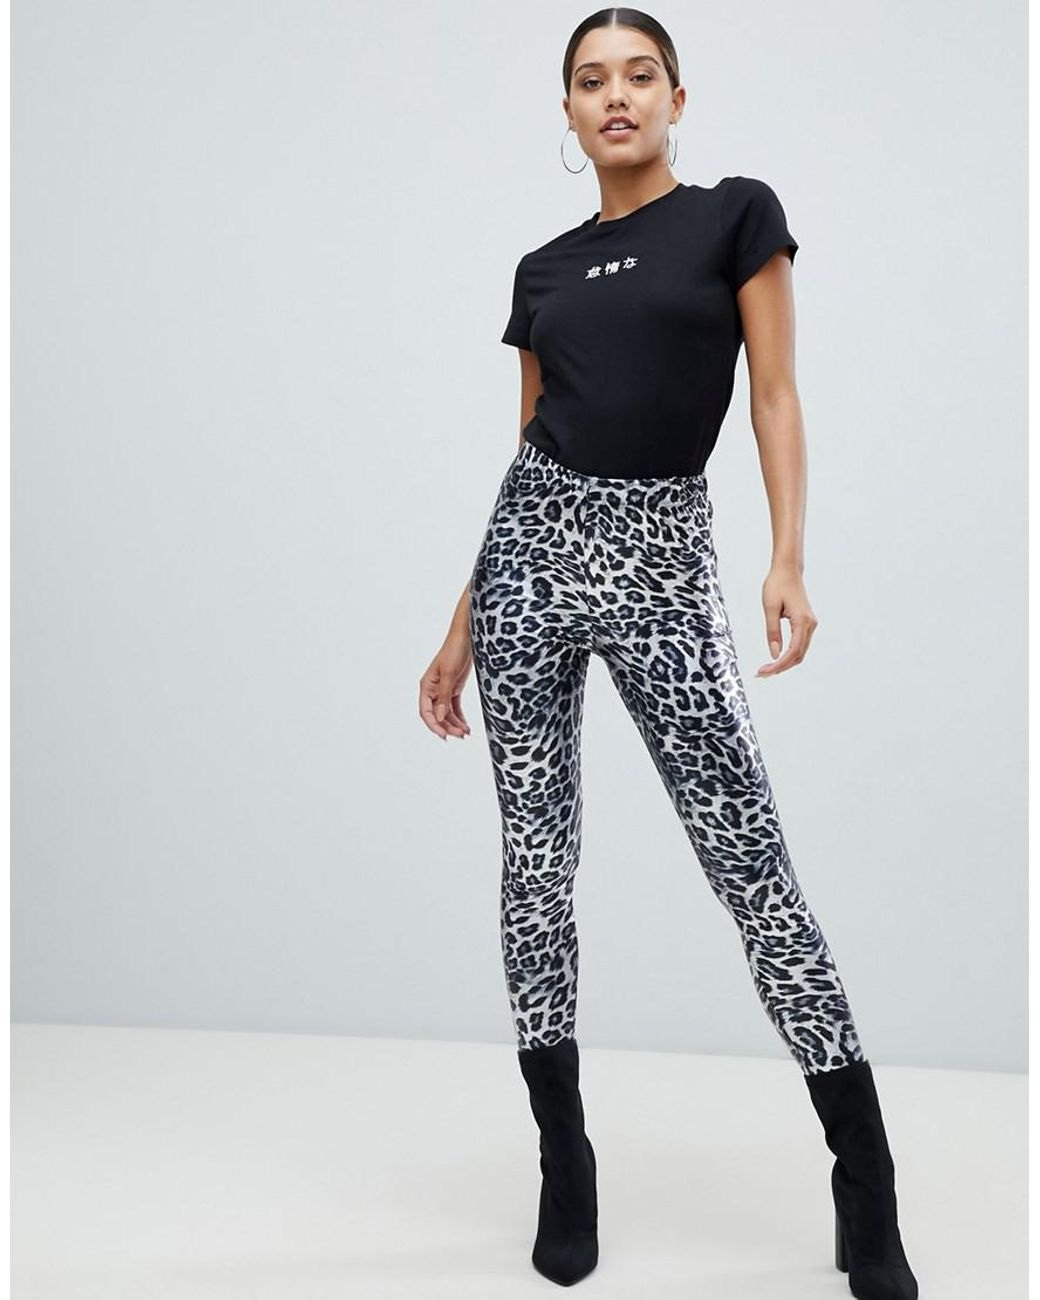 clearance prices 100% authentic official supplier Women's Wet Look legging In Animal Print With Split Side Detail